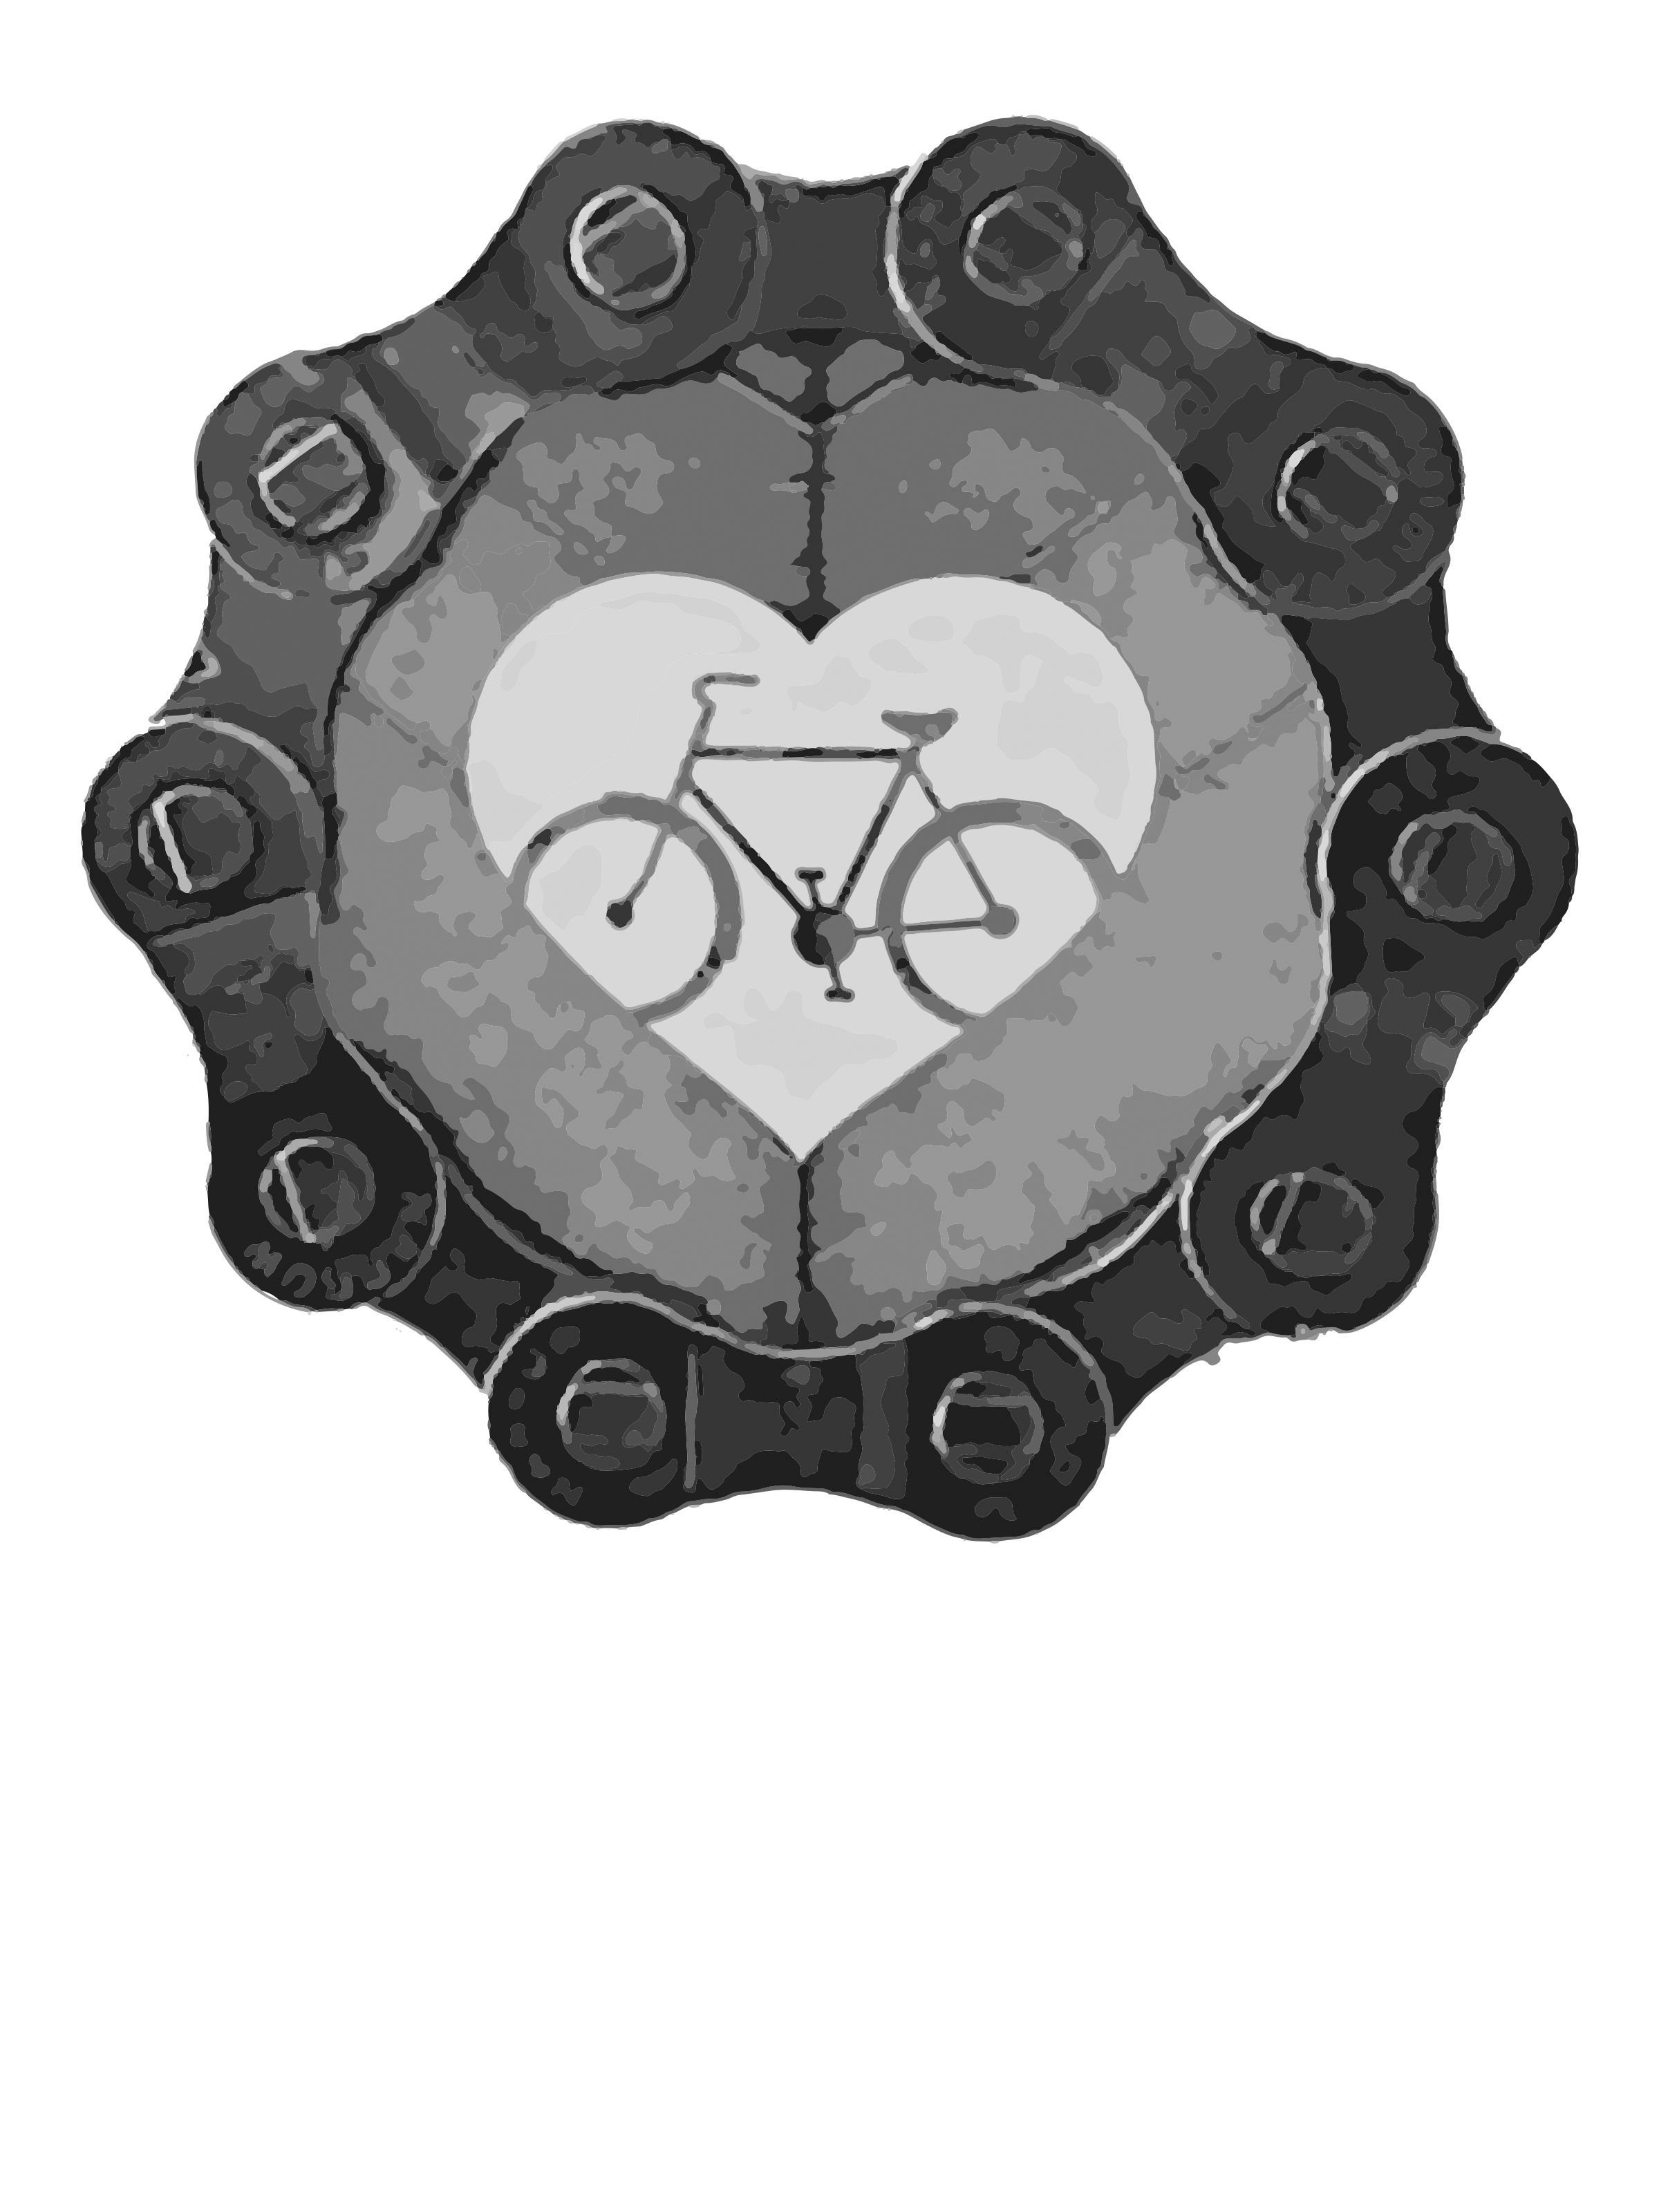 0234 – Chain Heart Bicycle